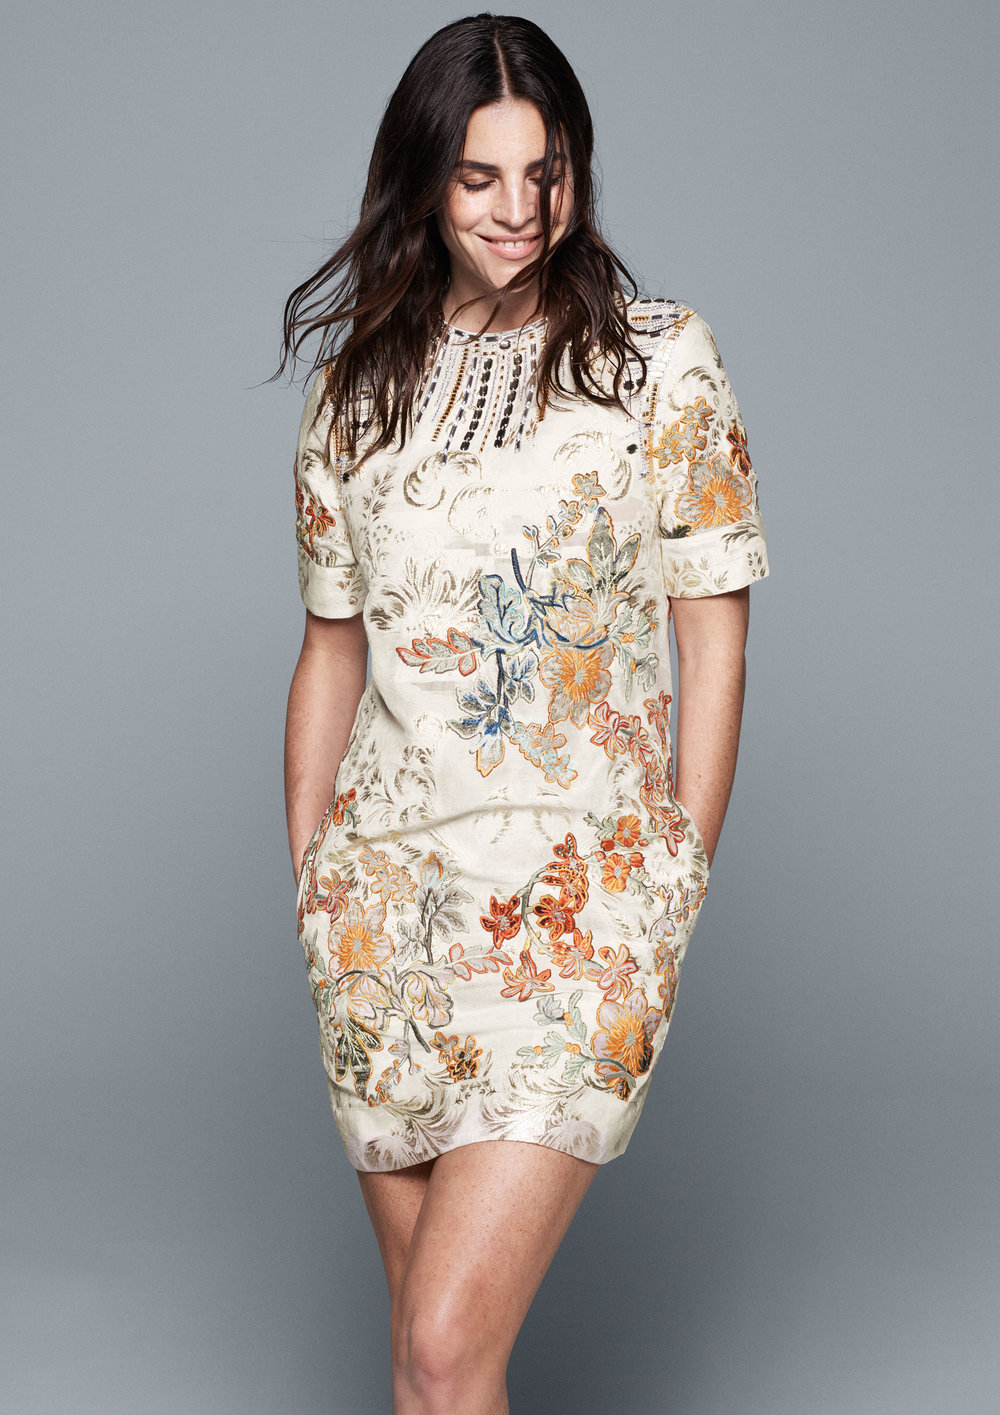 H&M+Conscious+Collection+Model.jpg